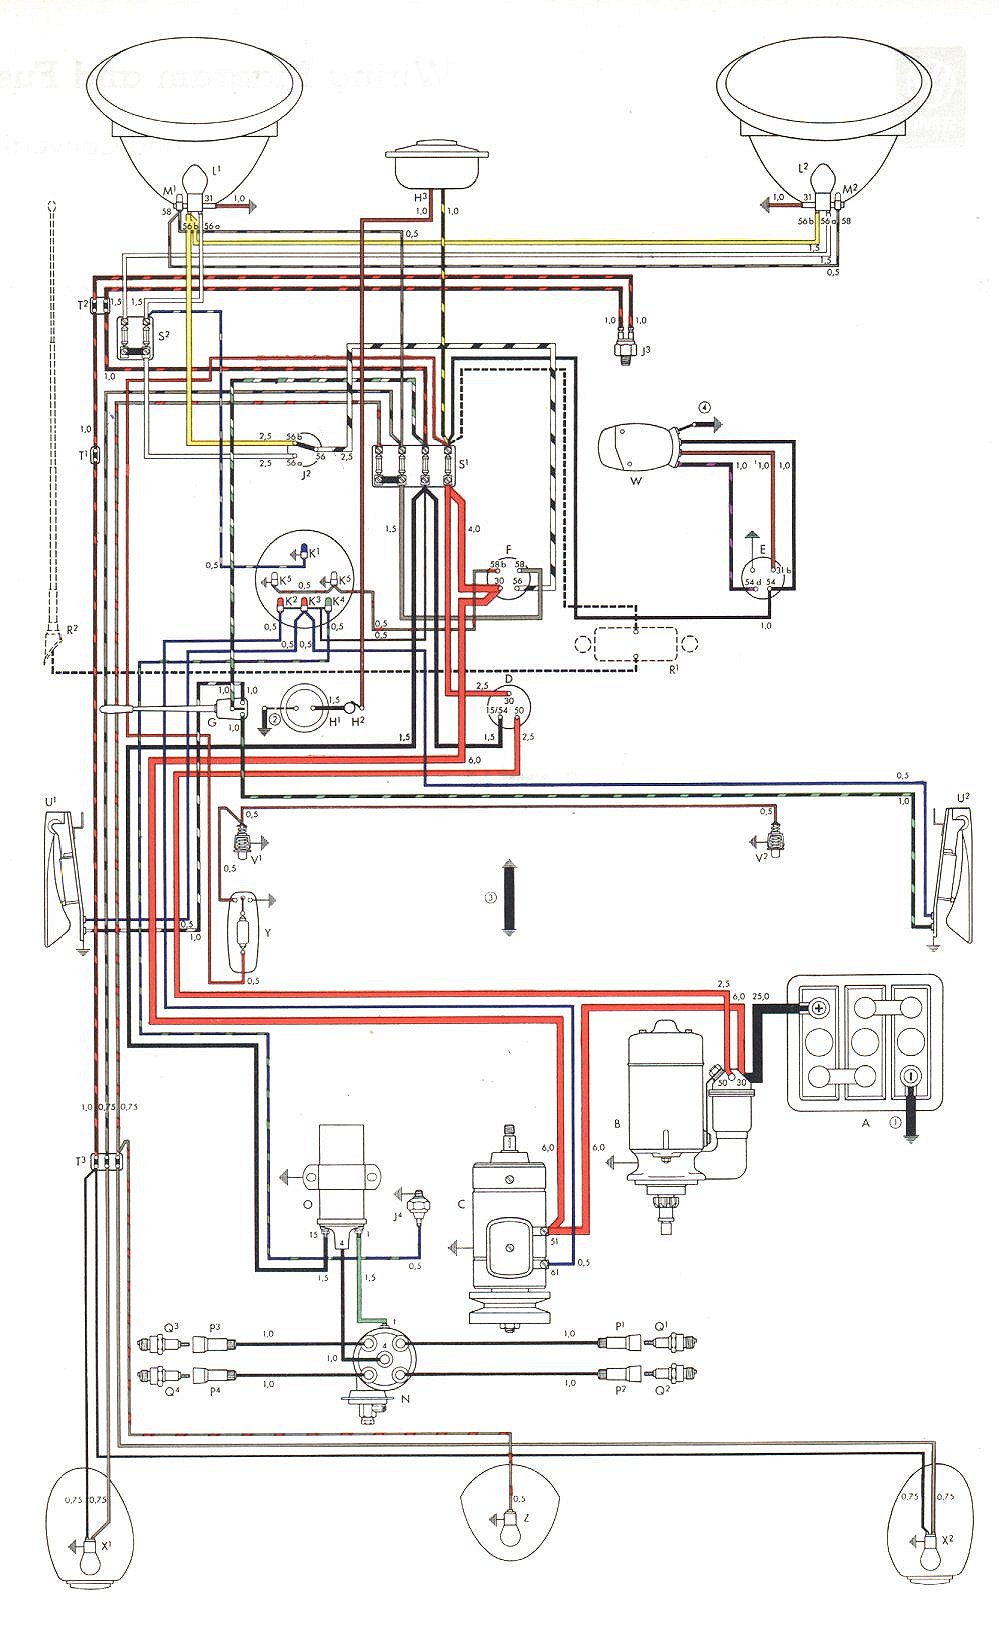 vw buggy wiring diagram for a 1600 custom wiring diagram \u2022 sand car wiring harness vw 1600 wiring diagram wire center u2022 rh leogallery co vw dune buggy wiring diagram dune buggy wiring systems